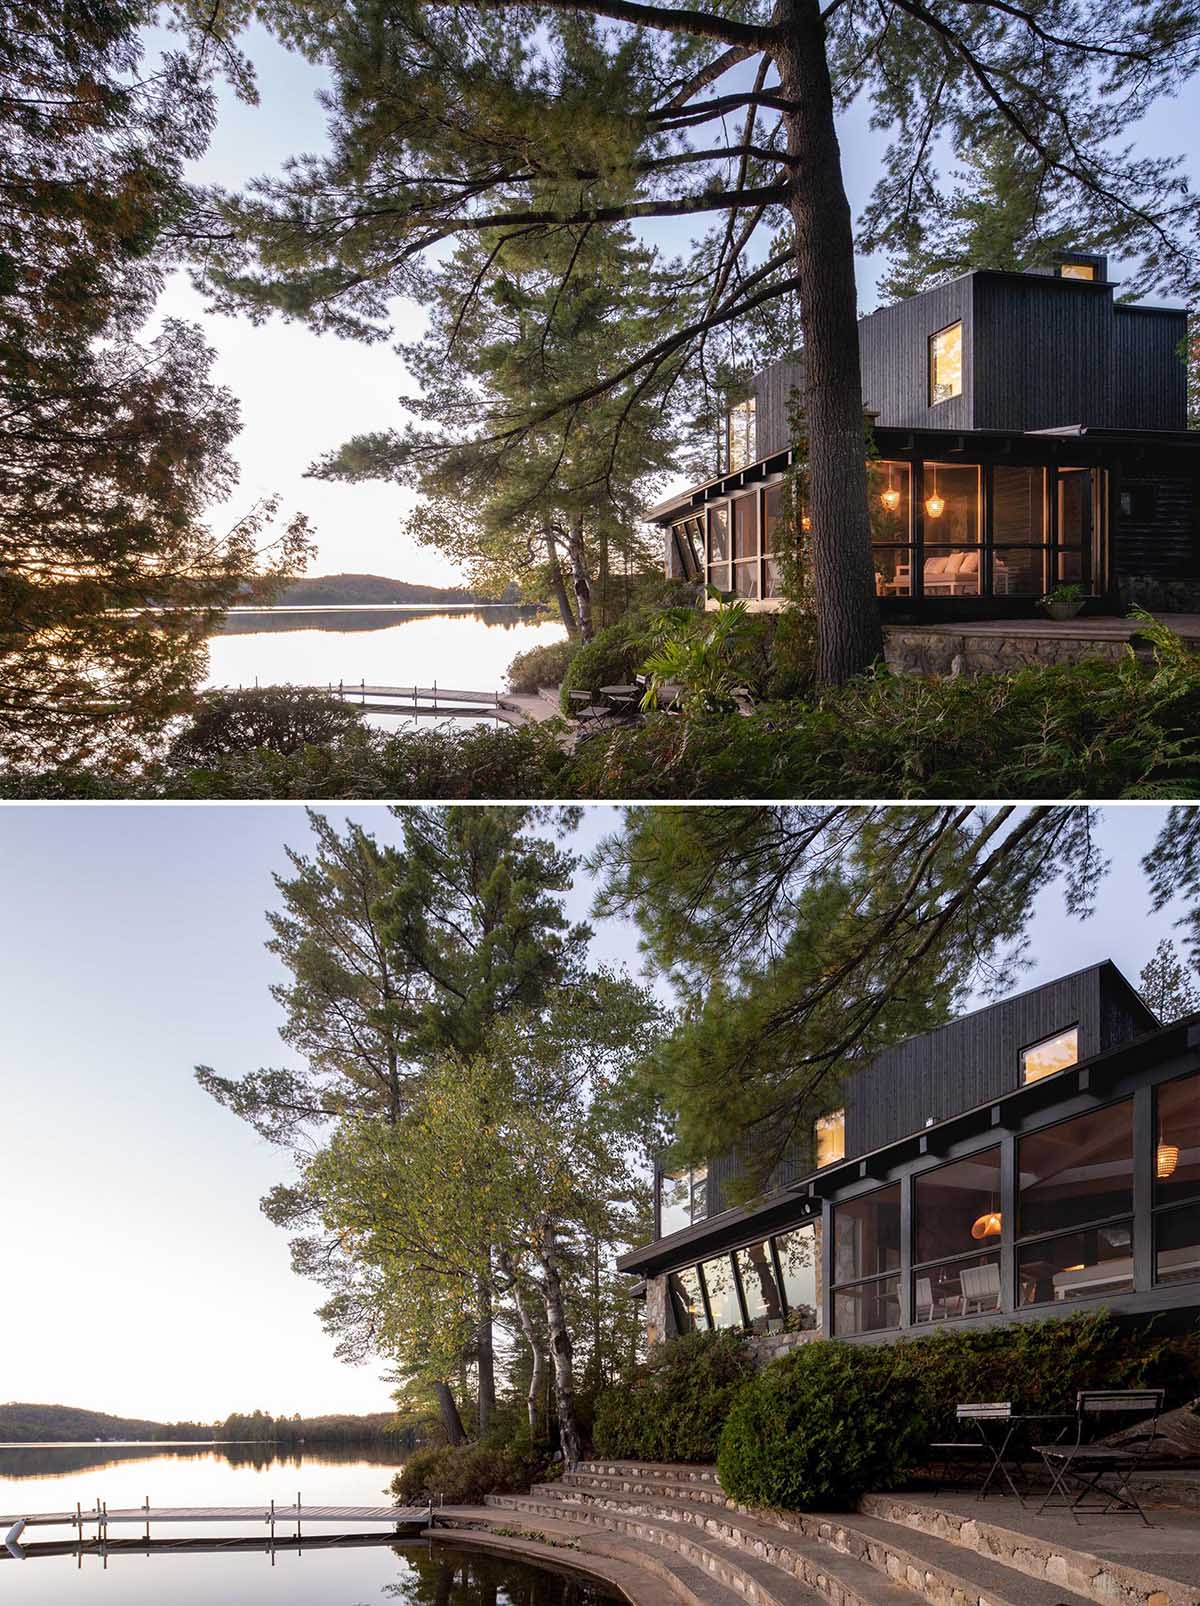 A log cabin with a stone foundation has a modern extension and screened-in porch.